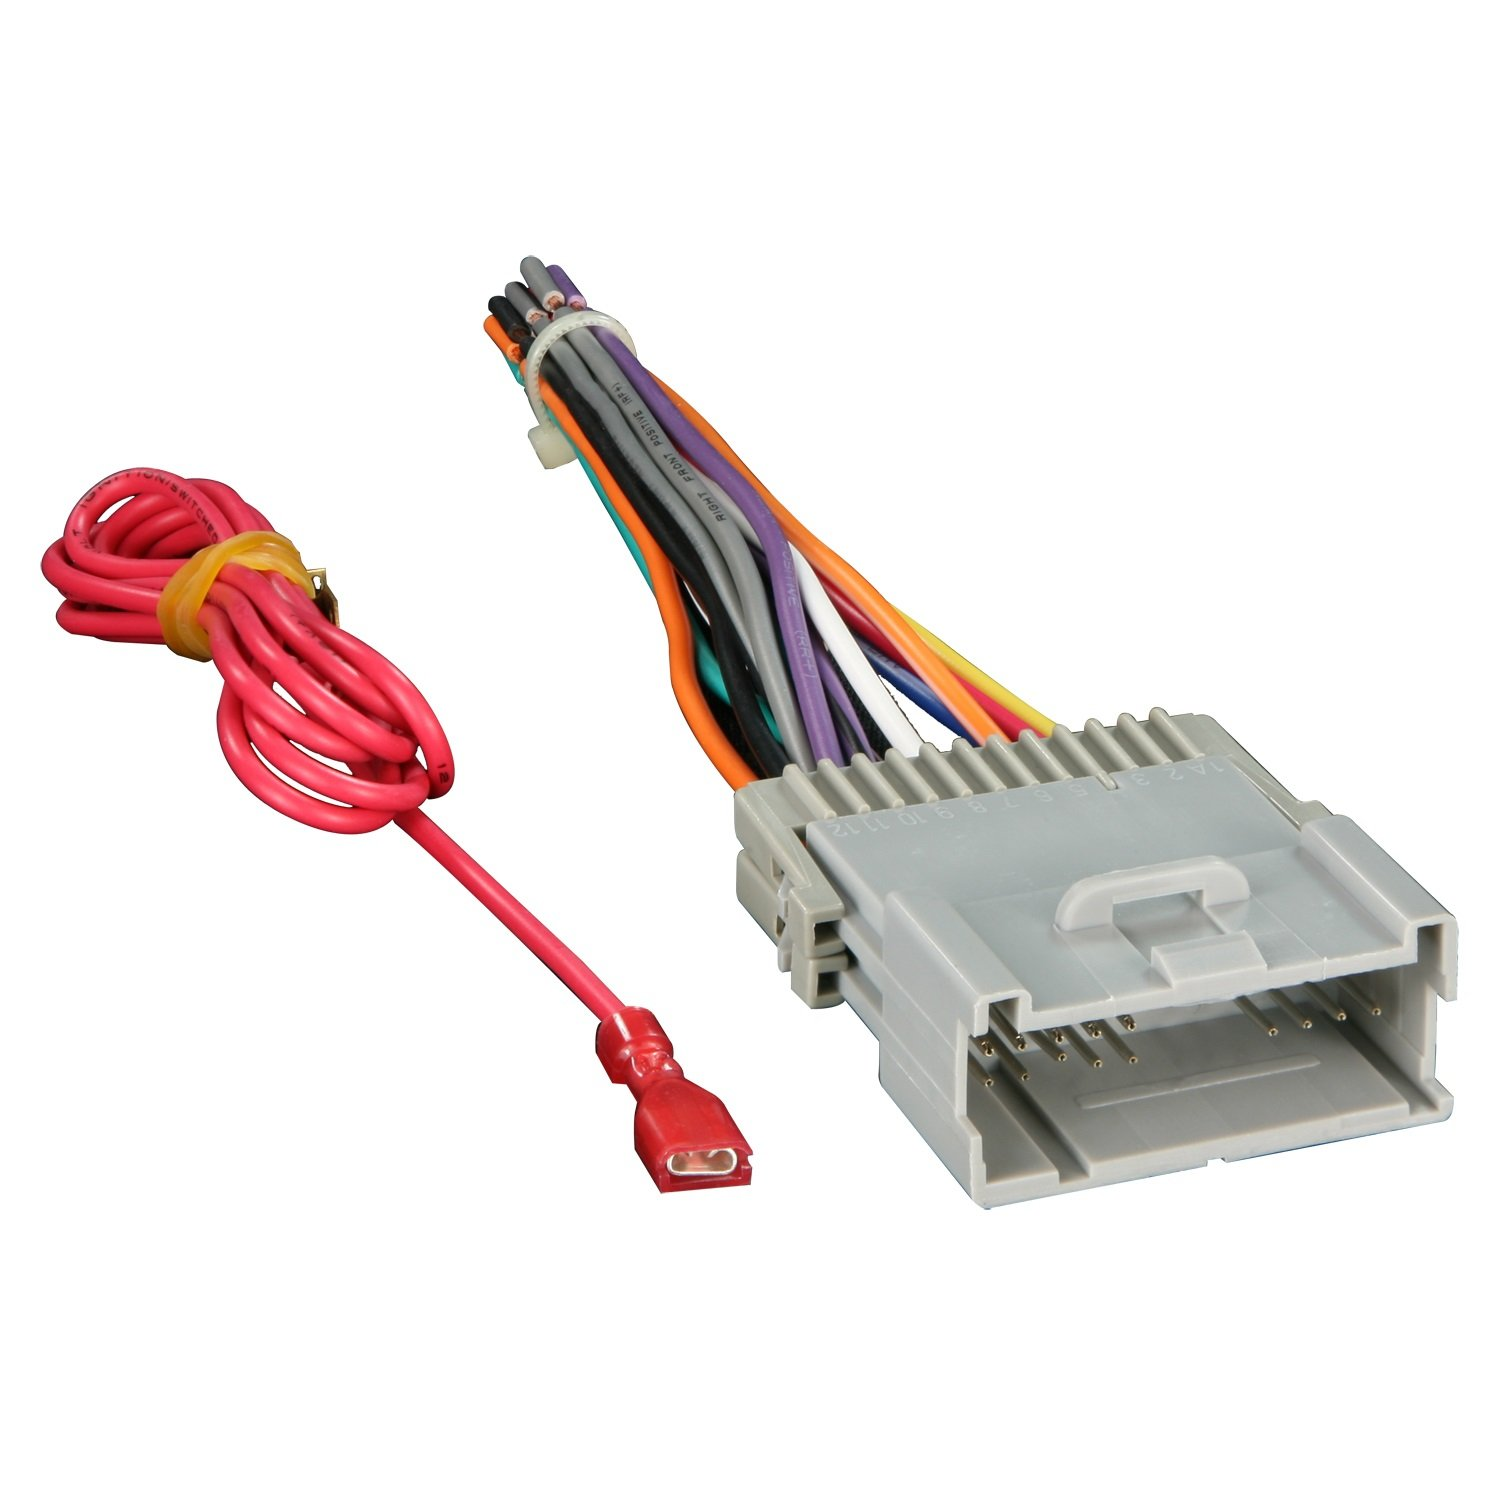 61eewxp9orL._SL1500_ amazon com metra 70 2003 radio wiring harness for gm 98 08 2007 GMC Sierra 1500 at virtualis.co